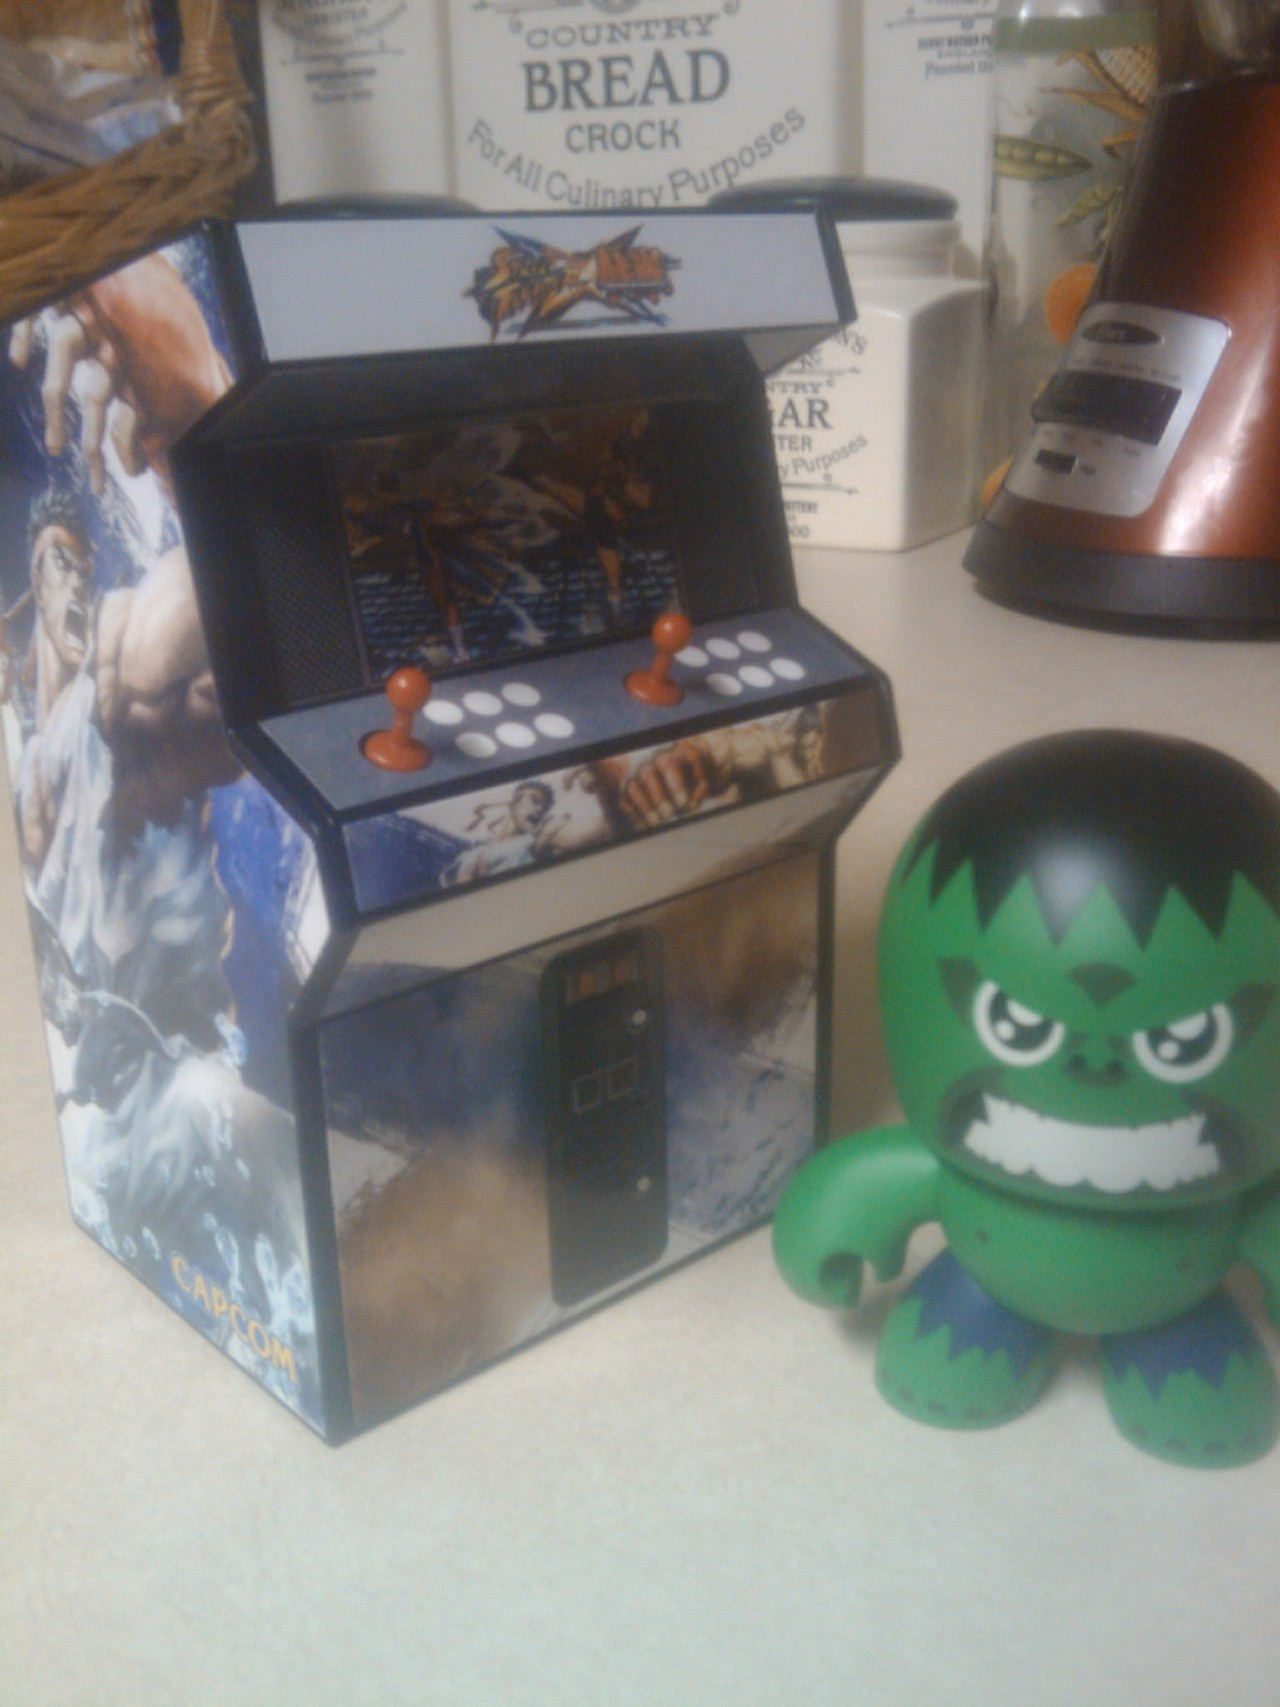 dude the arcade cabinet piggy bank model kit the special edition of SFxT came with is ADORABLE hahah just got done making mines :3